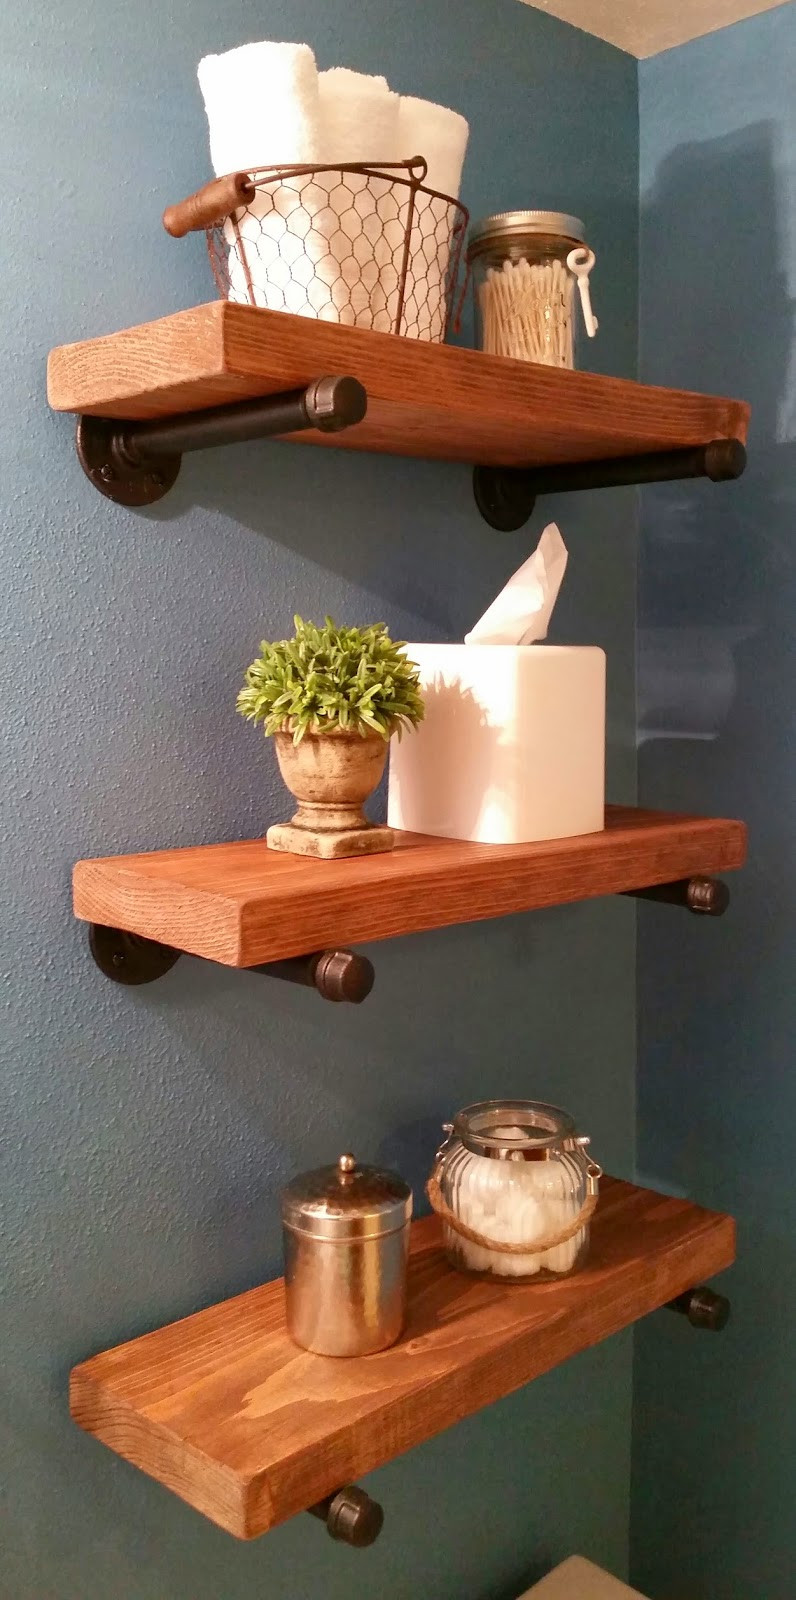 Best ideas about DIY Industrial Shelves . Save or Pin DIY Industrial Pipe Shelving Signed by Soden Now.